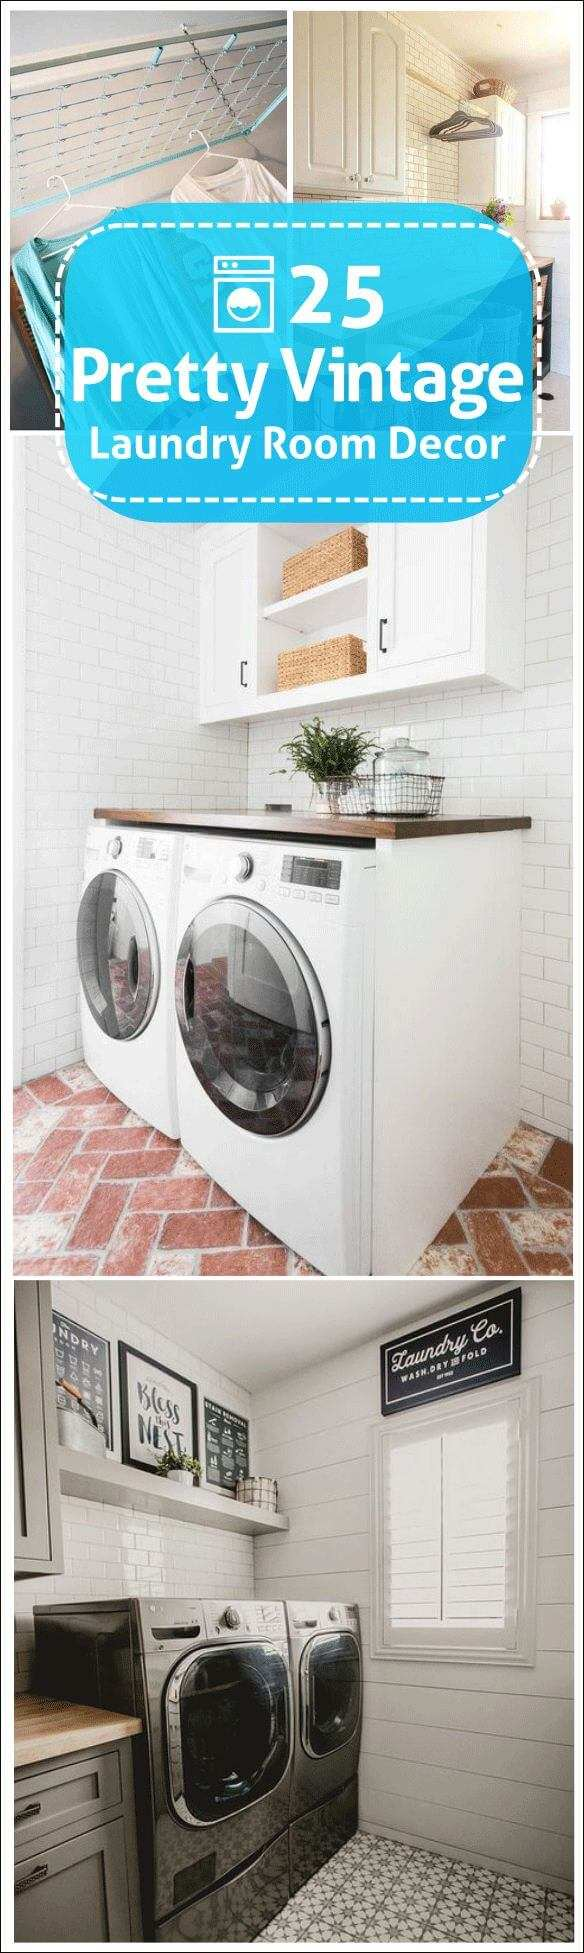 vintage laundry room decor amazon